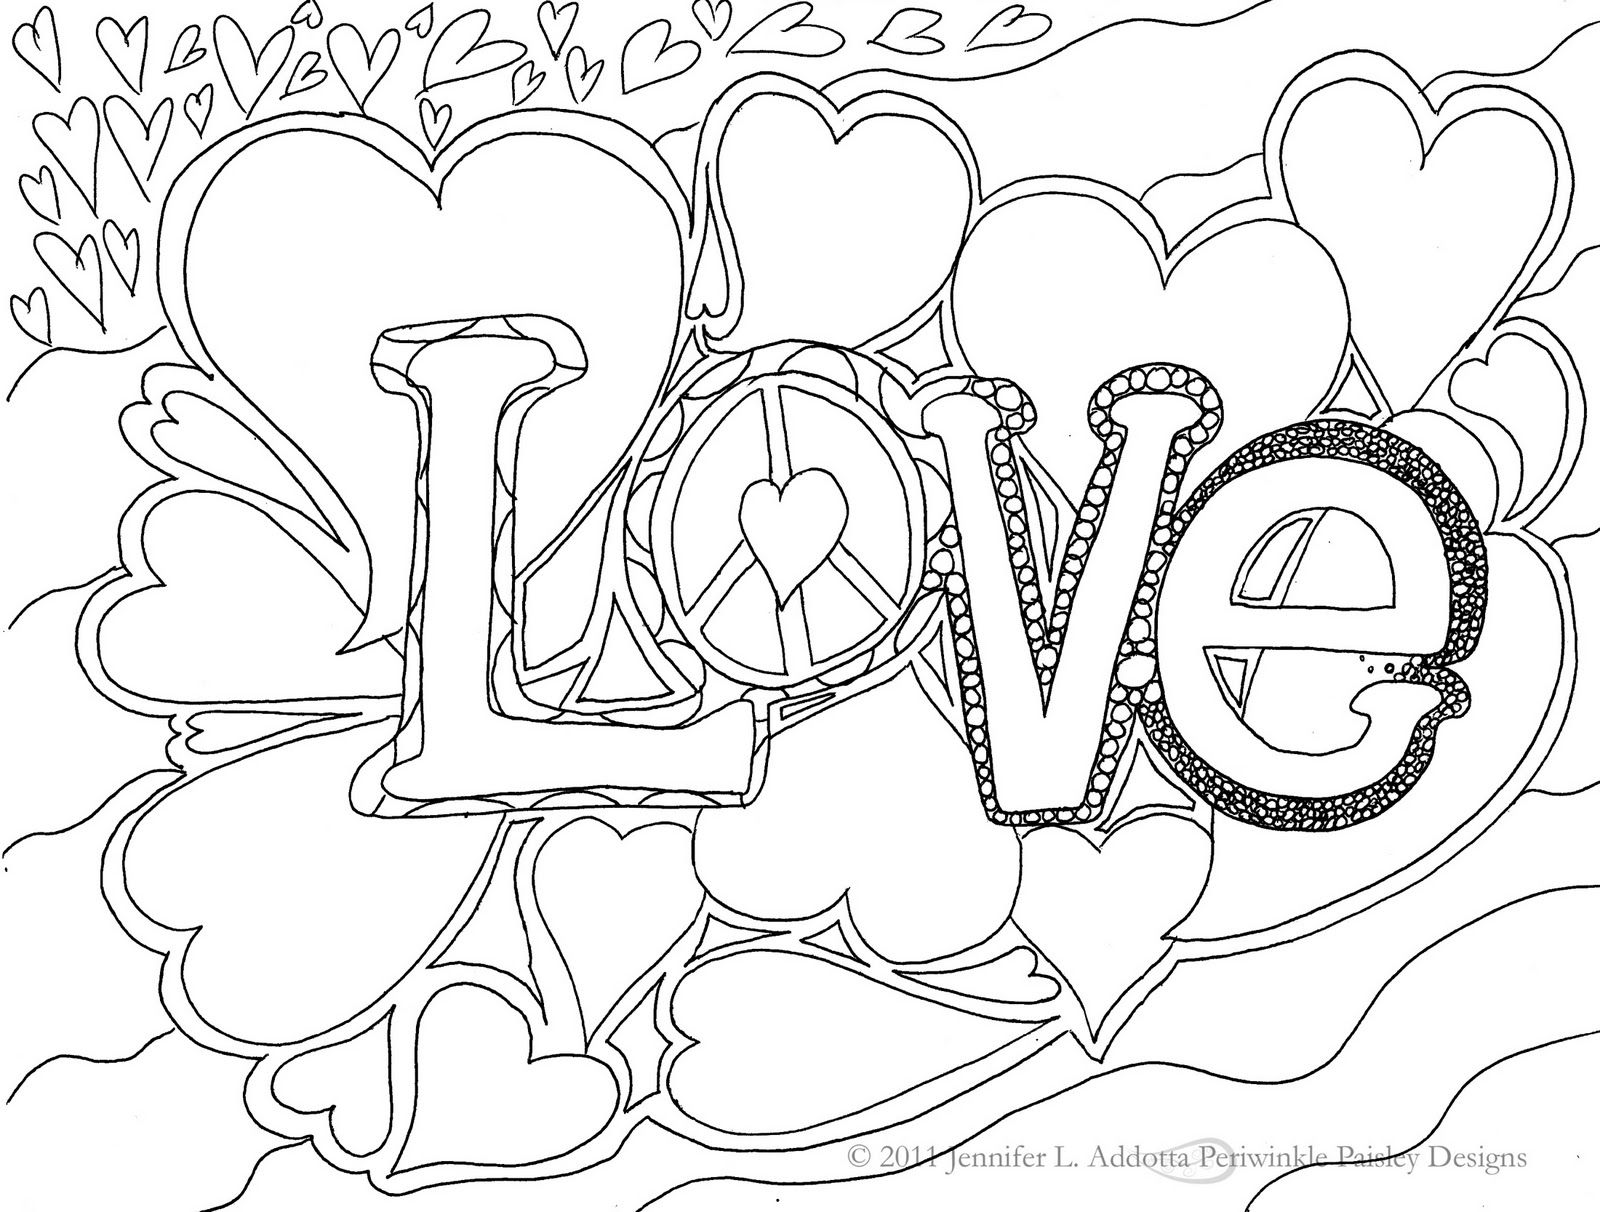 Printable coloring pages for teenage hard - Love Coloring Pages For Adults Free Coloring Page For You Or